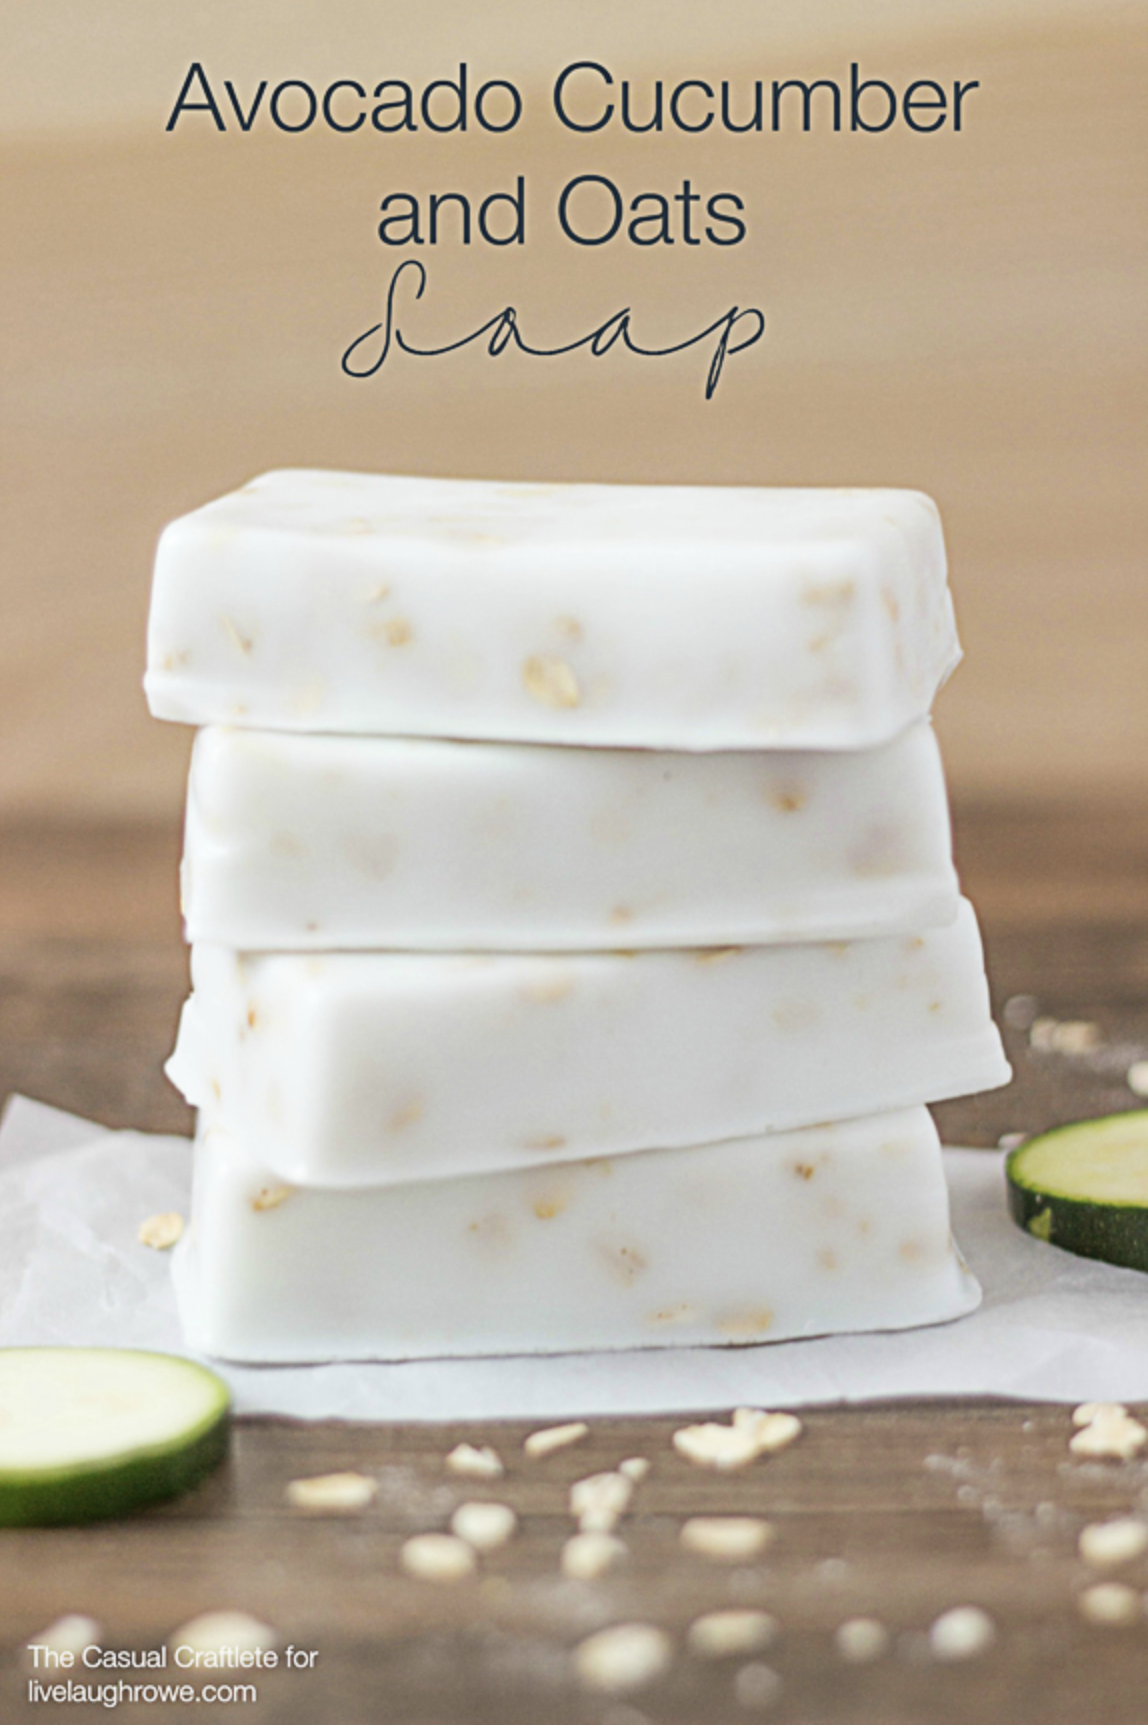 Avocado Cucumber and Oats Soap Recipe